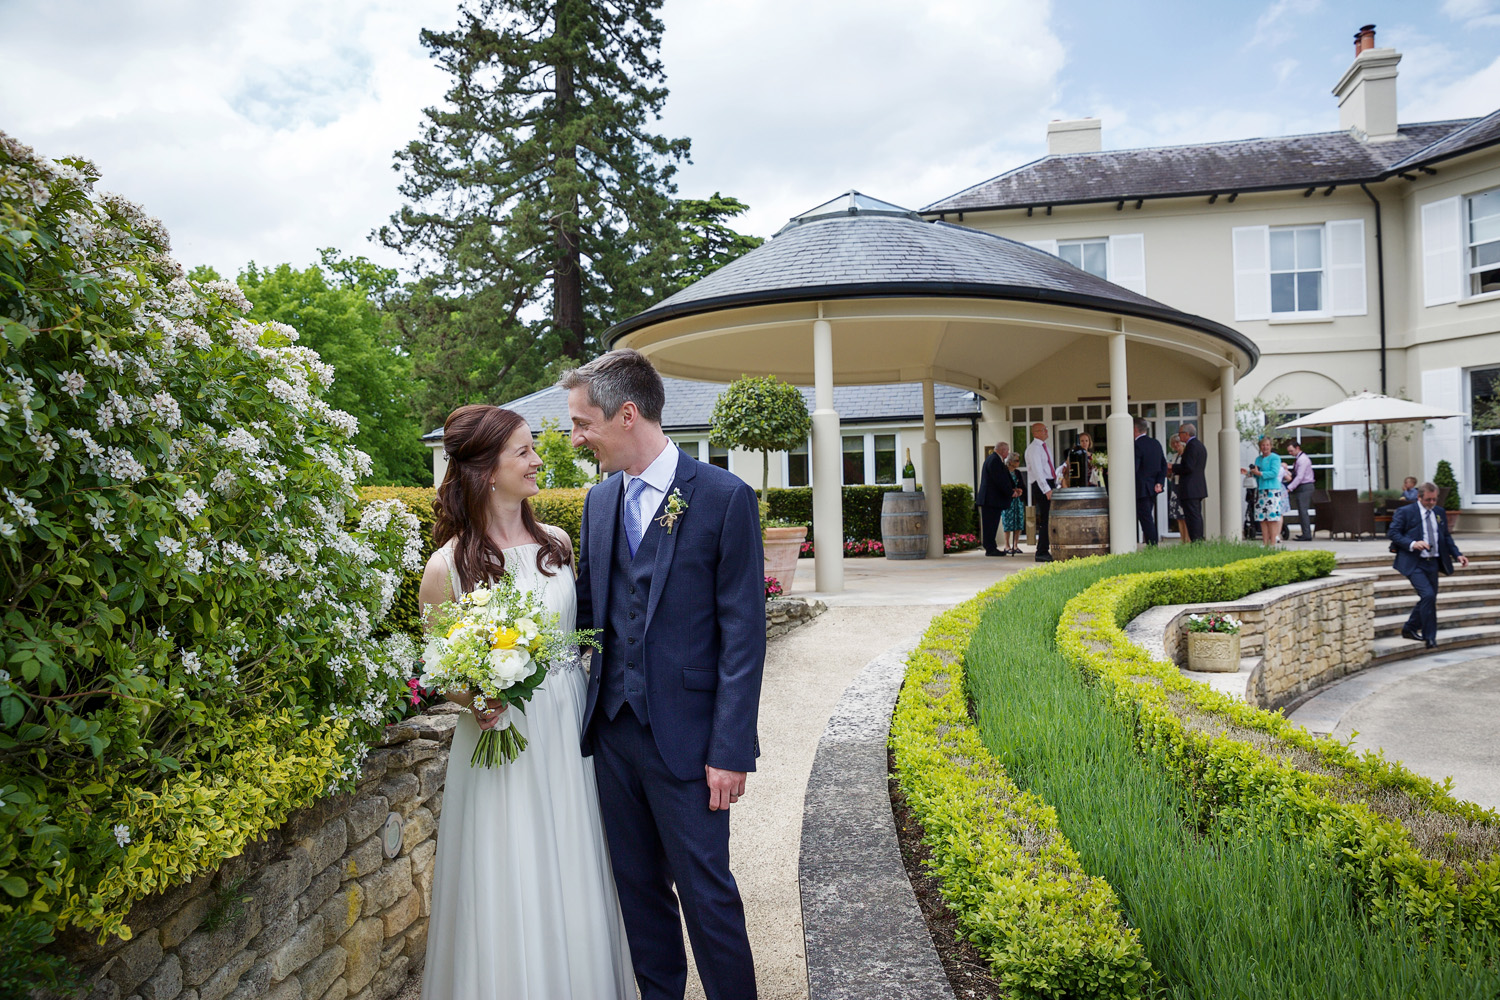 The_Vineyard_Hotel_Wedding_Photographer_Newbury_Berkshire_097.jpg